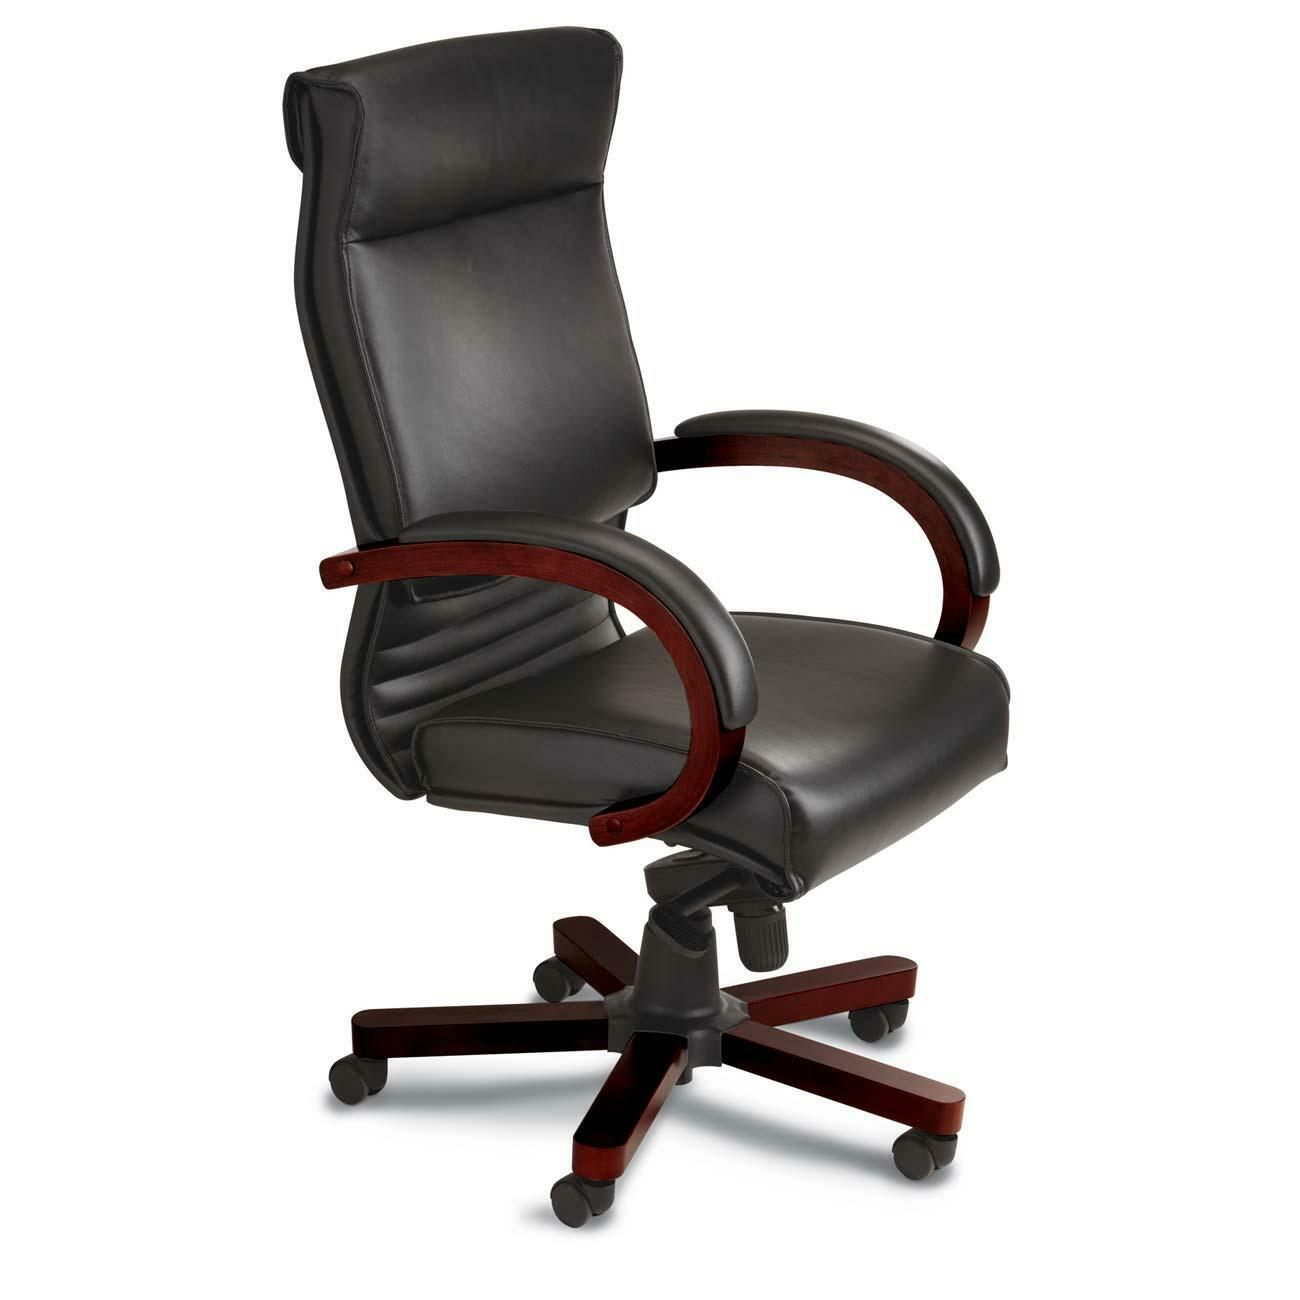 Tiffany Corsica High-back Leather Office Chair  OfficeSupply.com